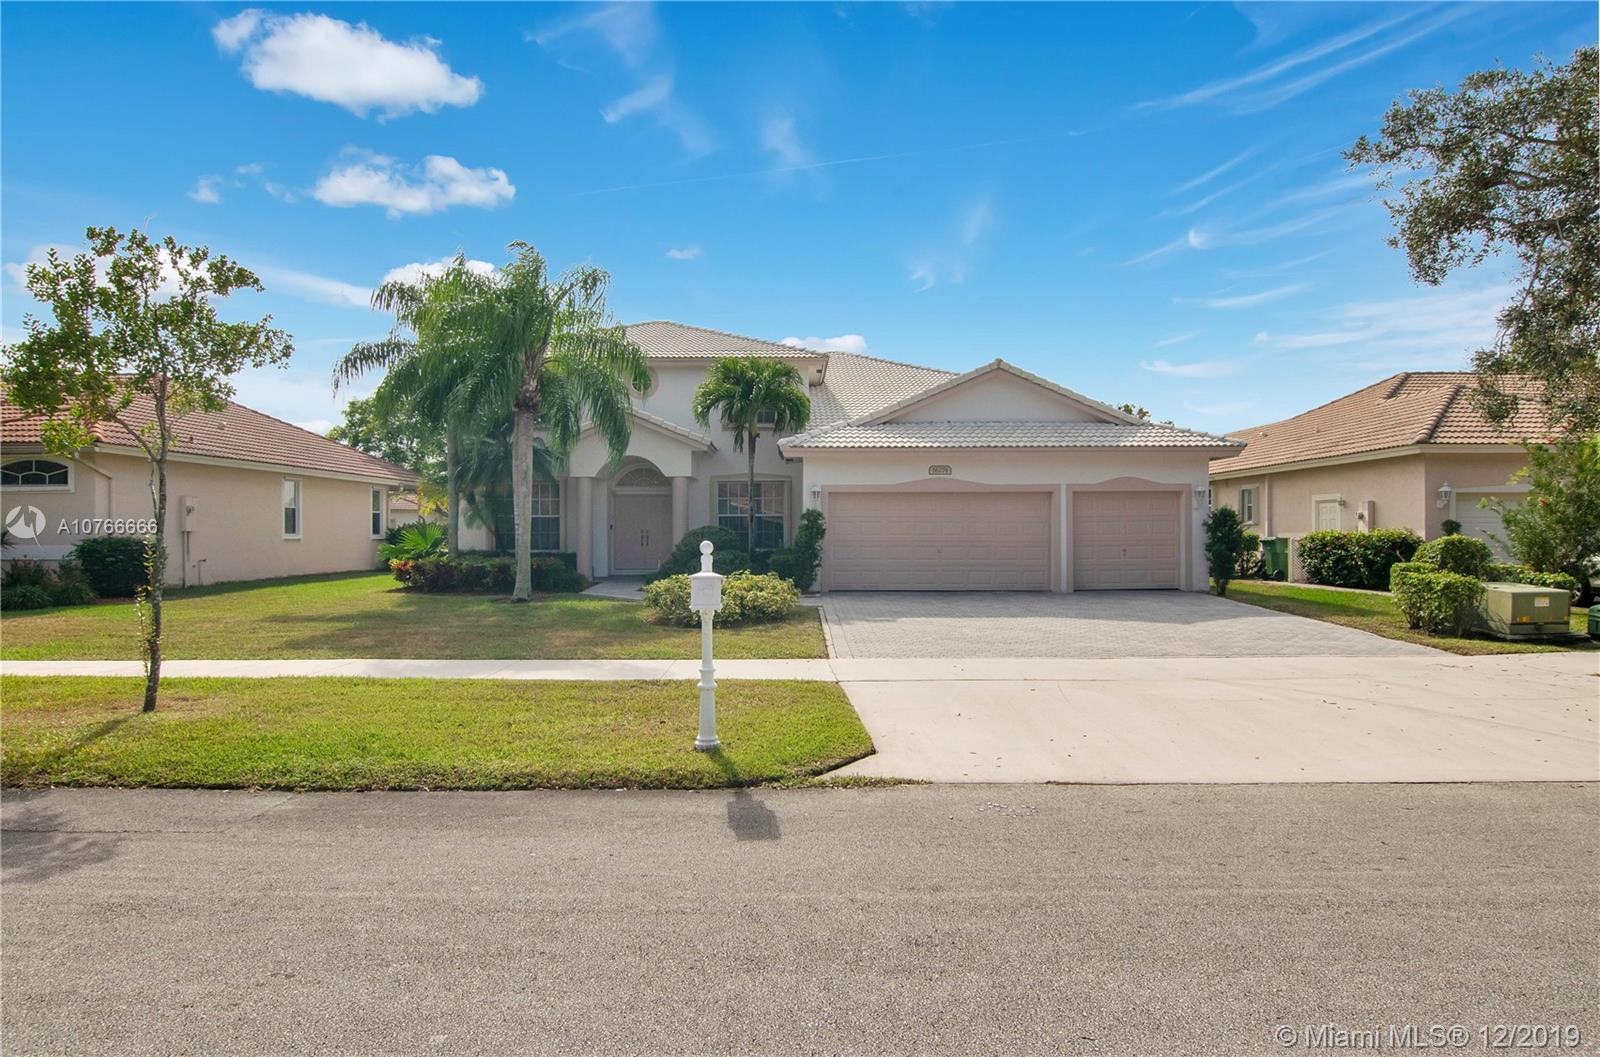 Property for sale at 16274 S Segovia Cir S, Pembroke Pines,  Florida 33331